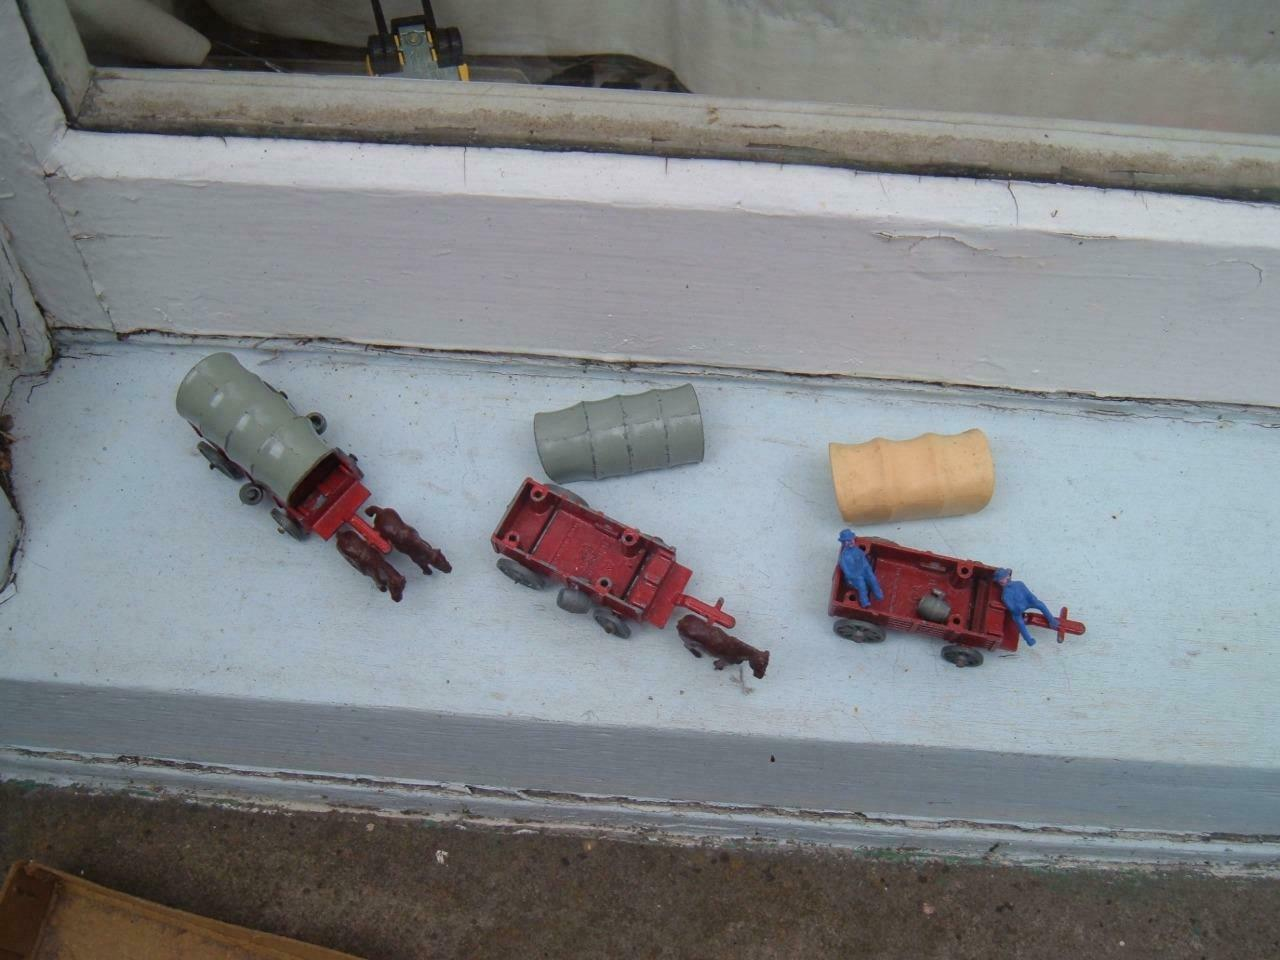 Budgie Toys-WAGON TRAIN-Wild West chariots-Spares Repairs Repairs Repairs - e17d53